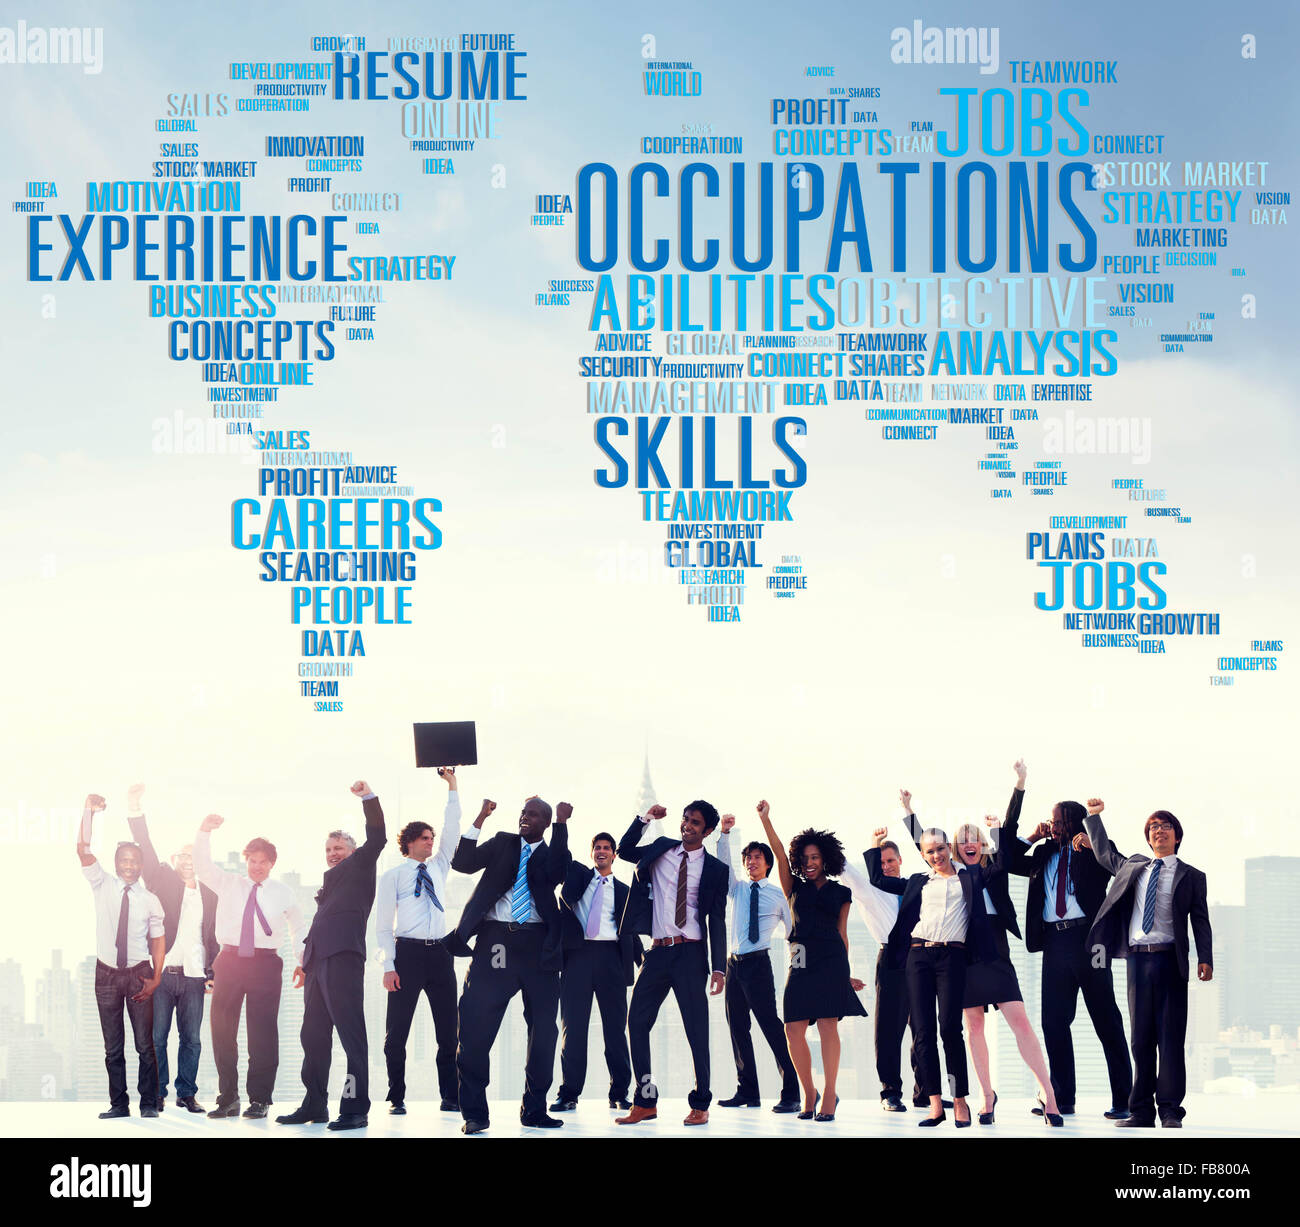 Occupations Careers Community Experience Global Concept - Stock Image